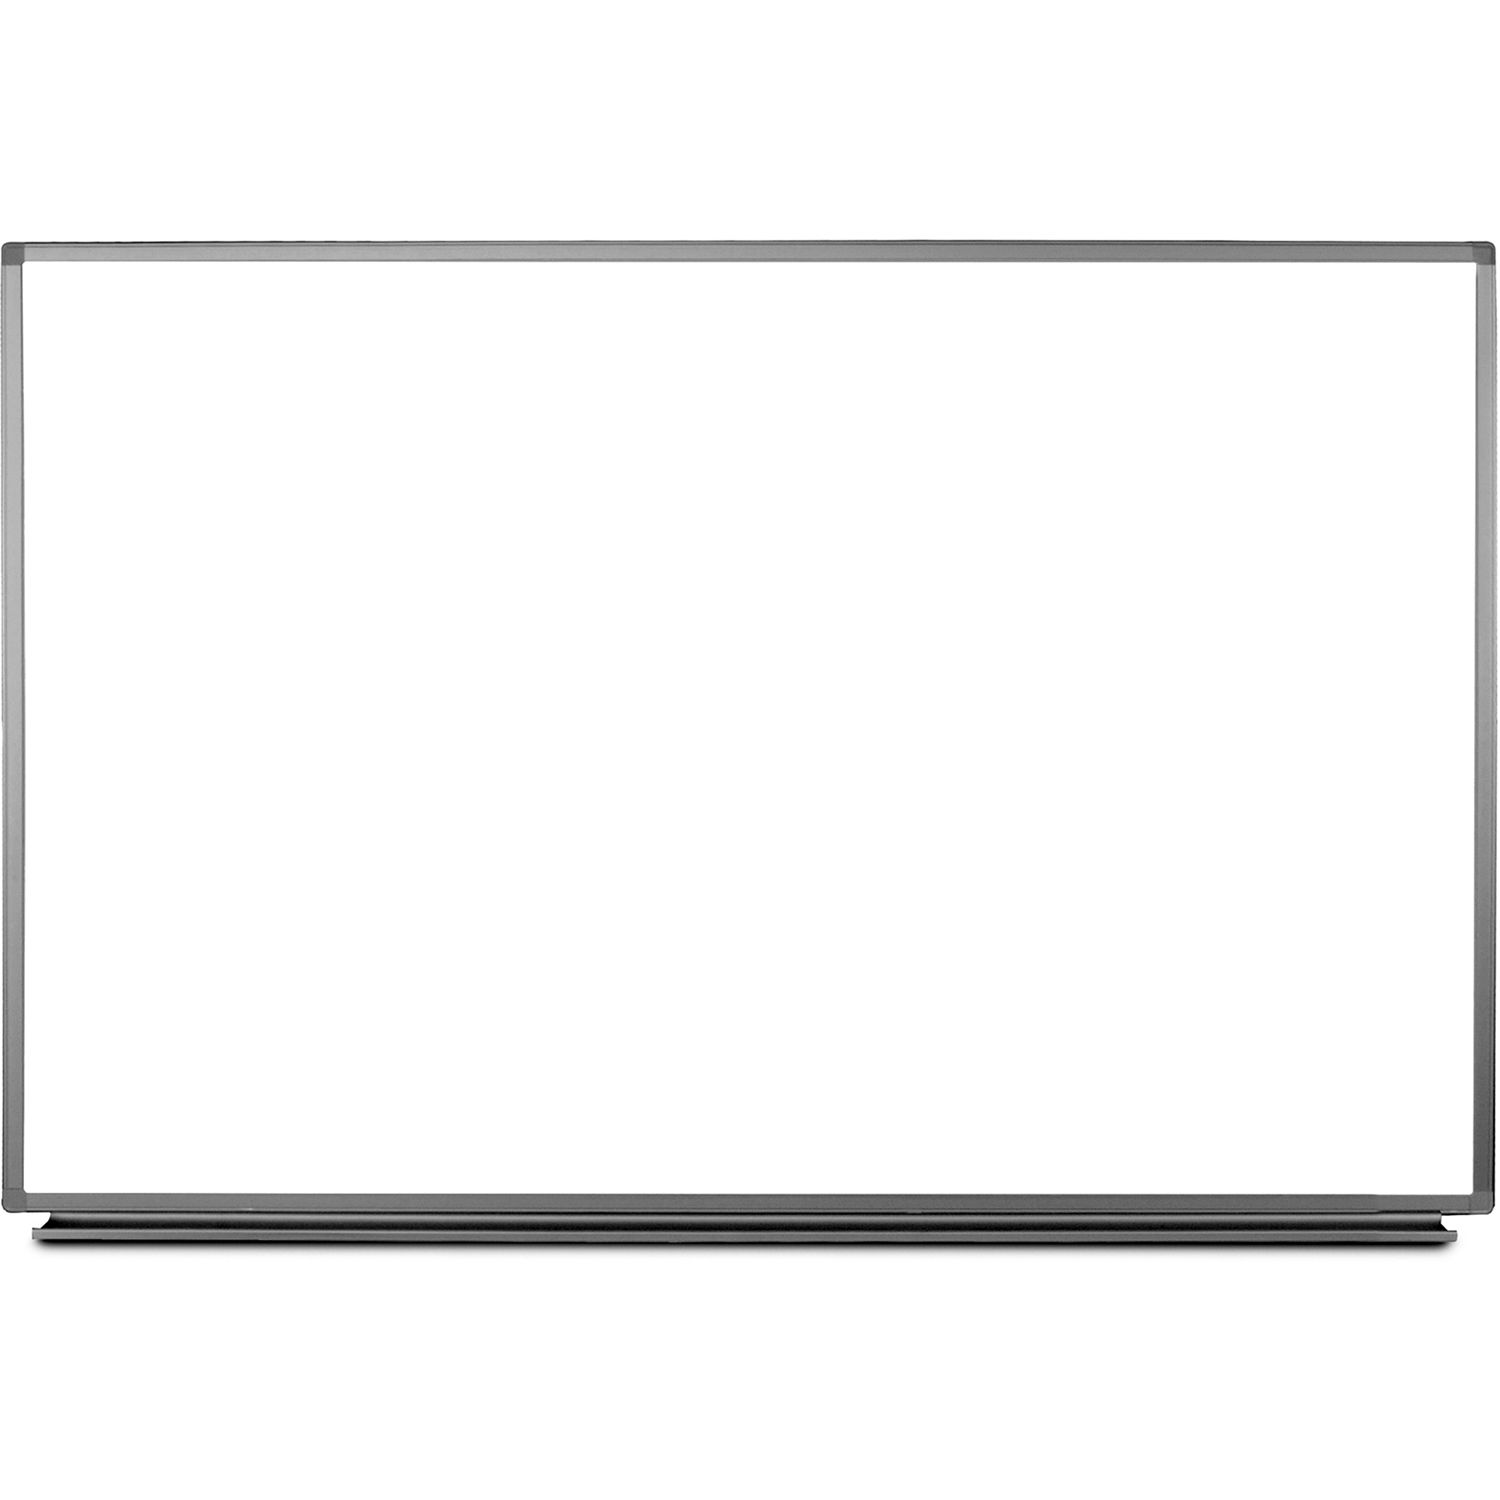 luxor wall mountable magnetic whiteboard 60 x 40 - Magnetic White Board